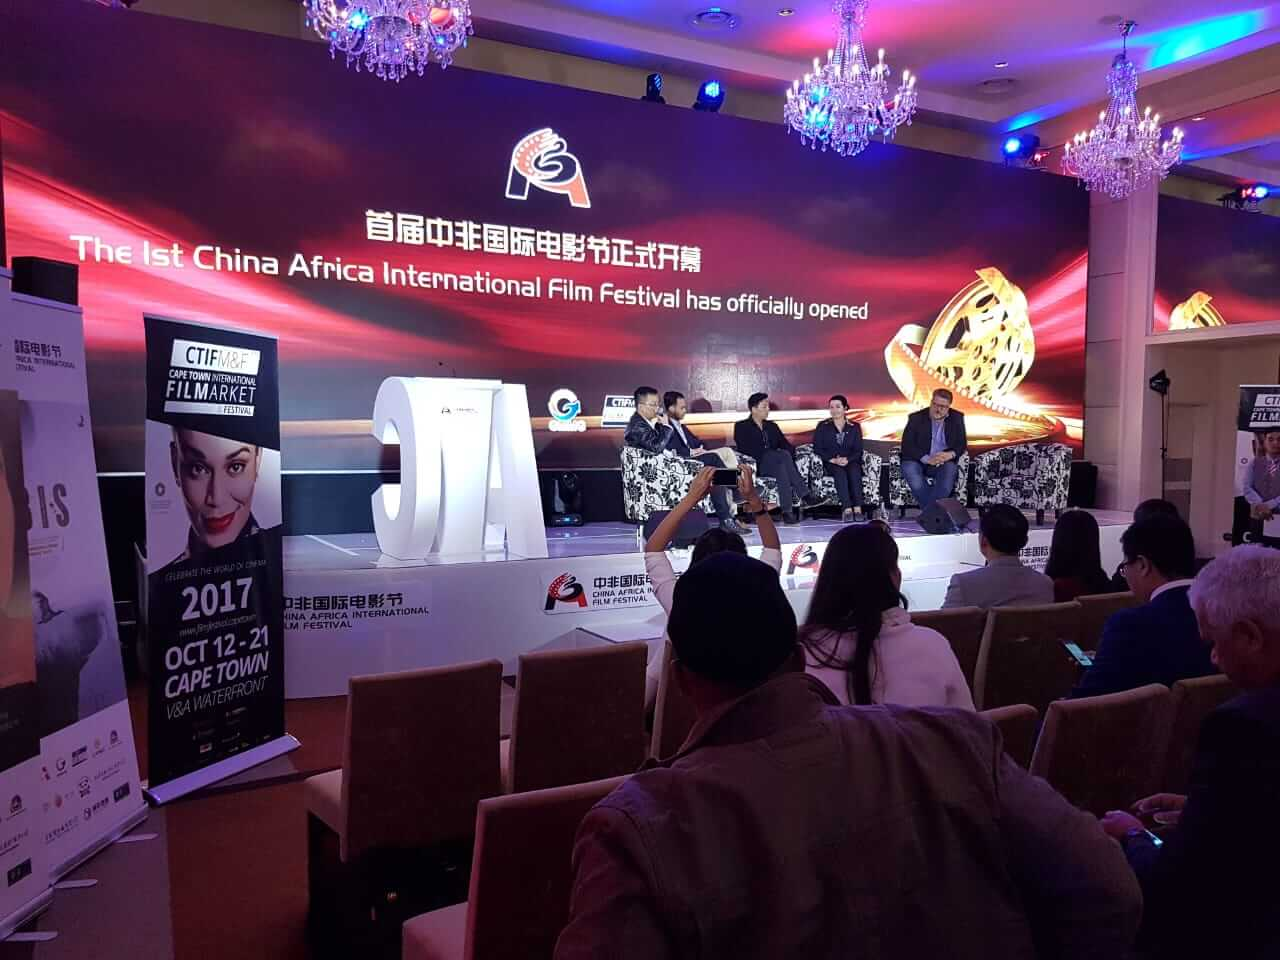 chinese film festival video screen, lighting and stage